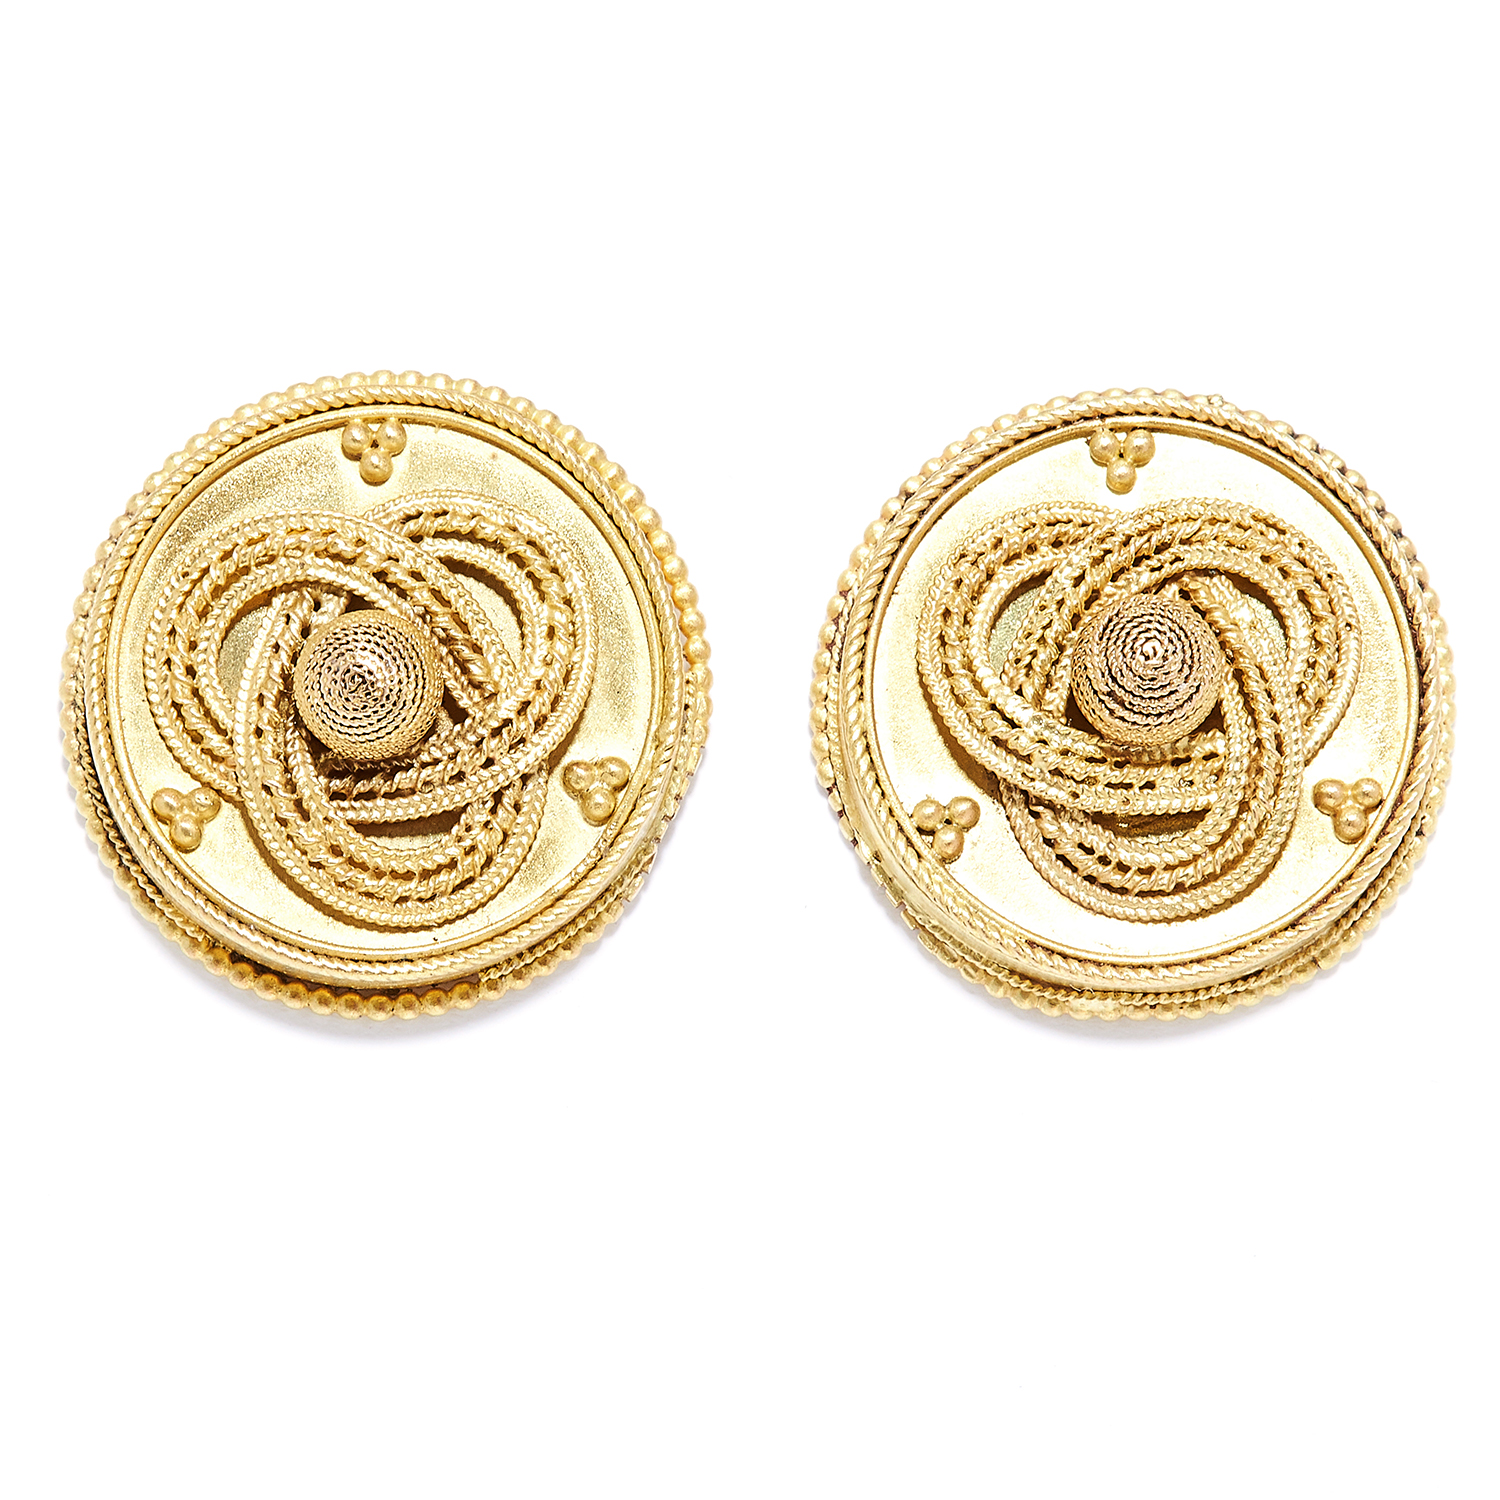 Los 2 - ANTIQUE ETRUSCAN REVIVAL EARRINGS, 19TH CENTURY in high carat yellow gold, in Etruscan revival